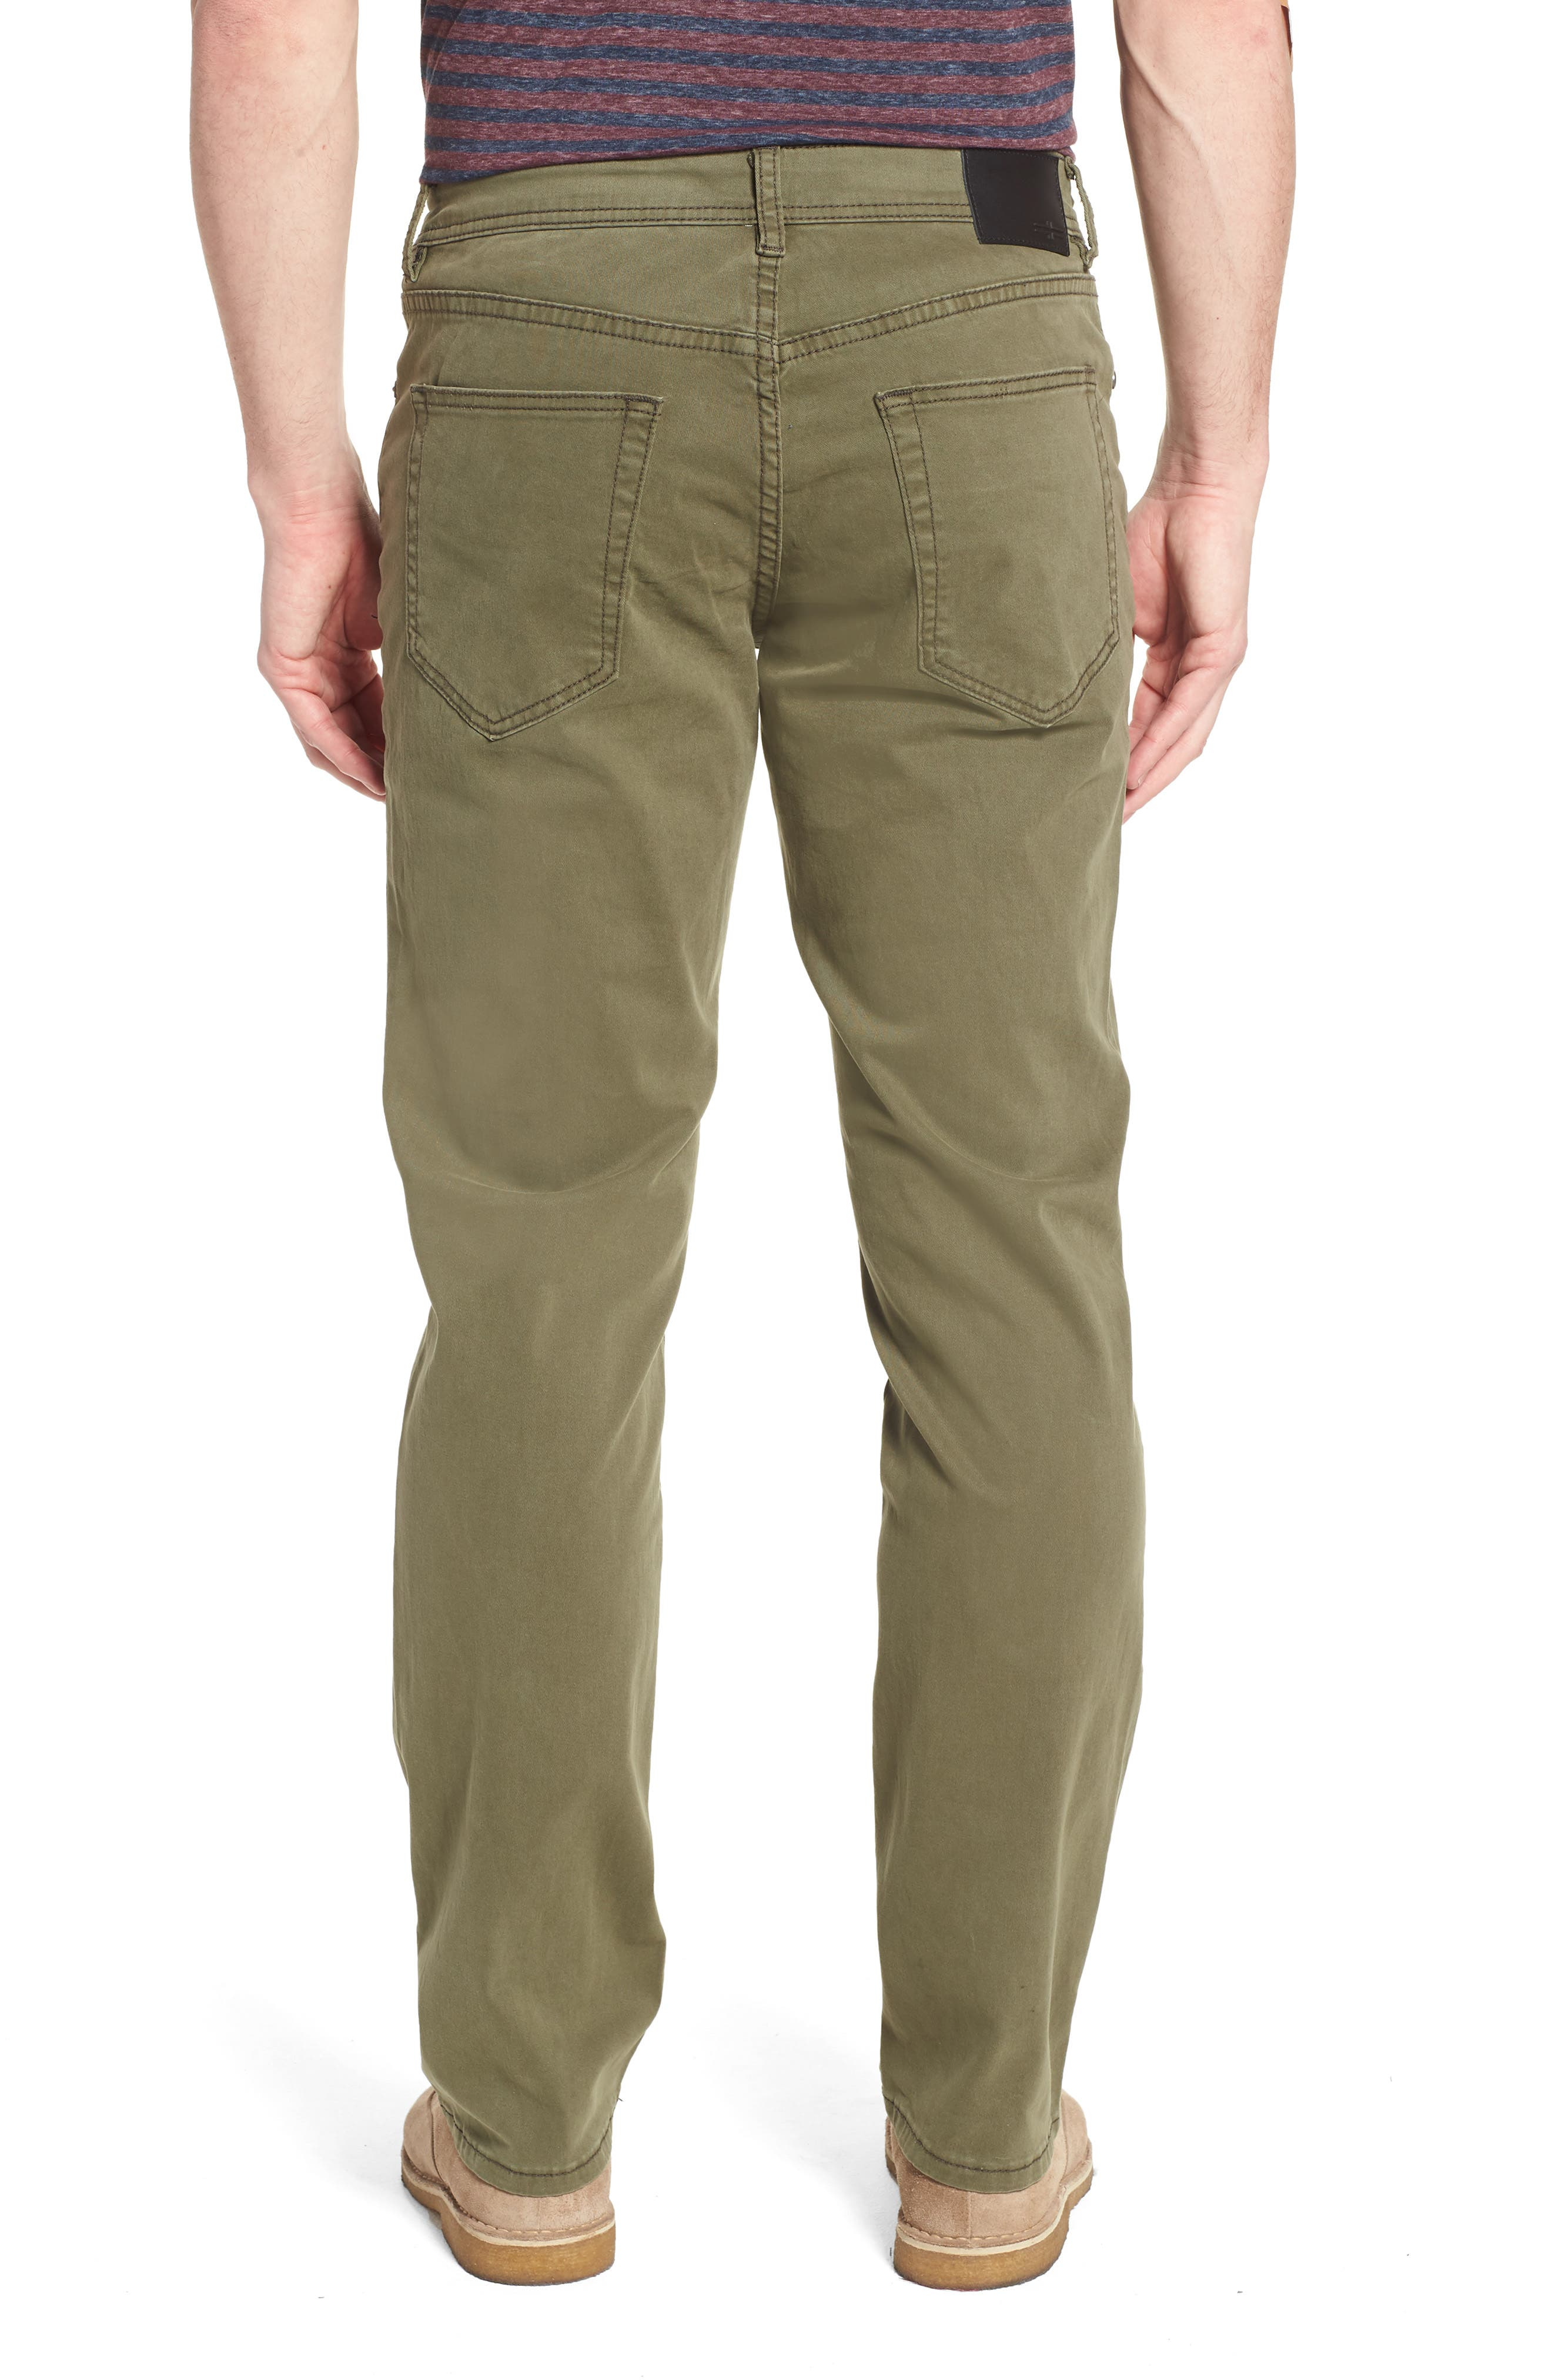 Jeans Co. Regent Relaxed Fit Jeans,                             Alternate thumbnail 2, color,                             OLIVE NIGHT